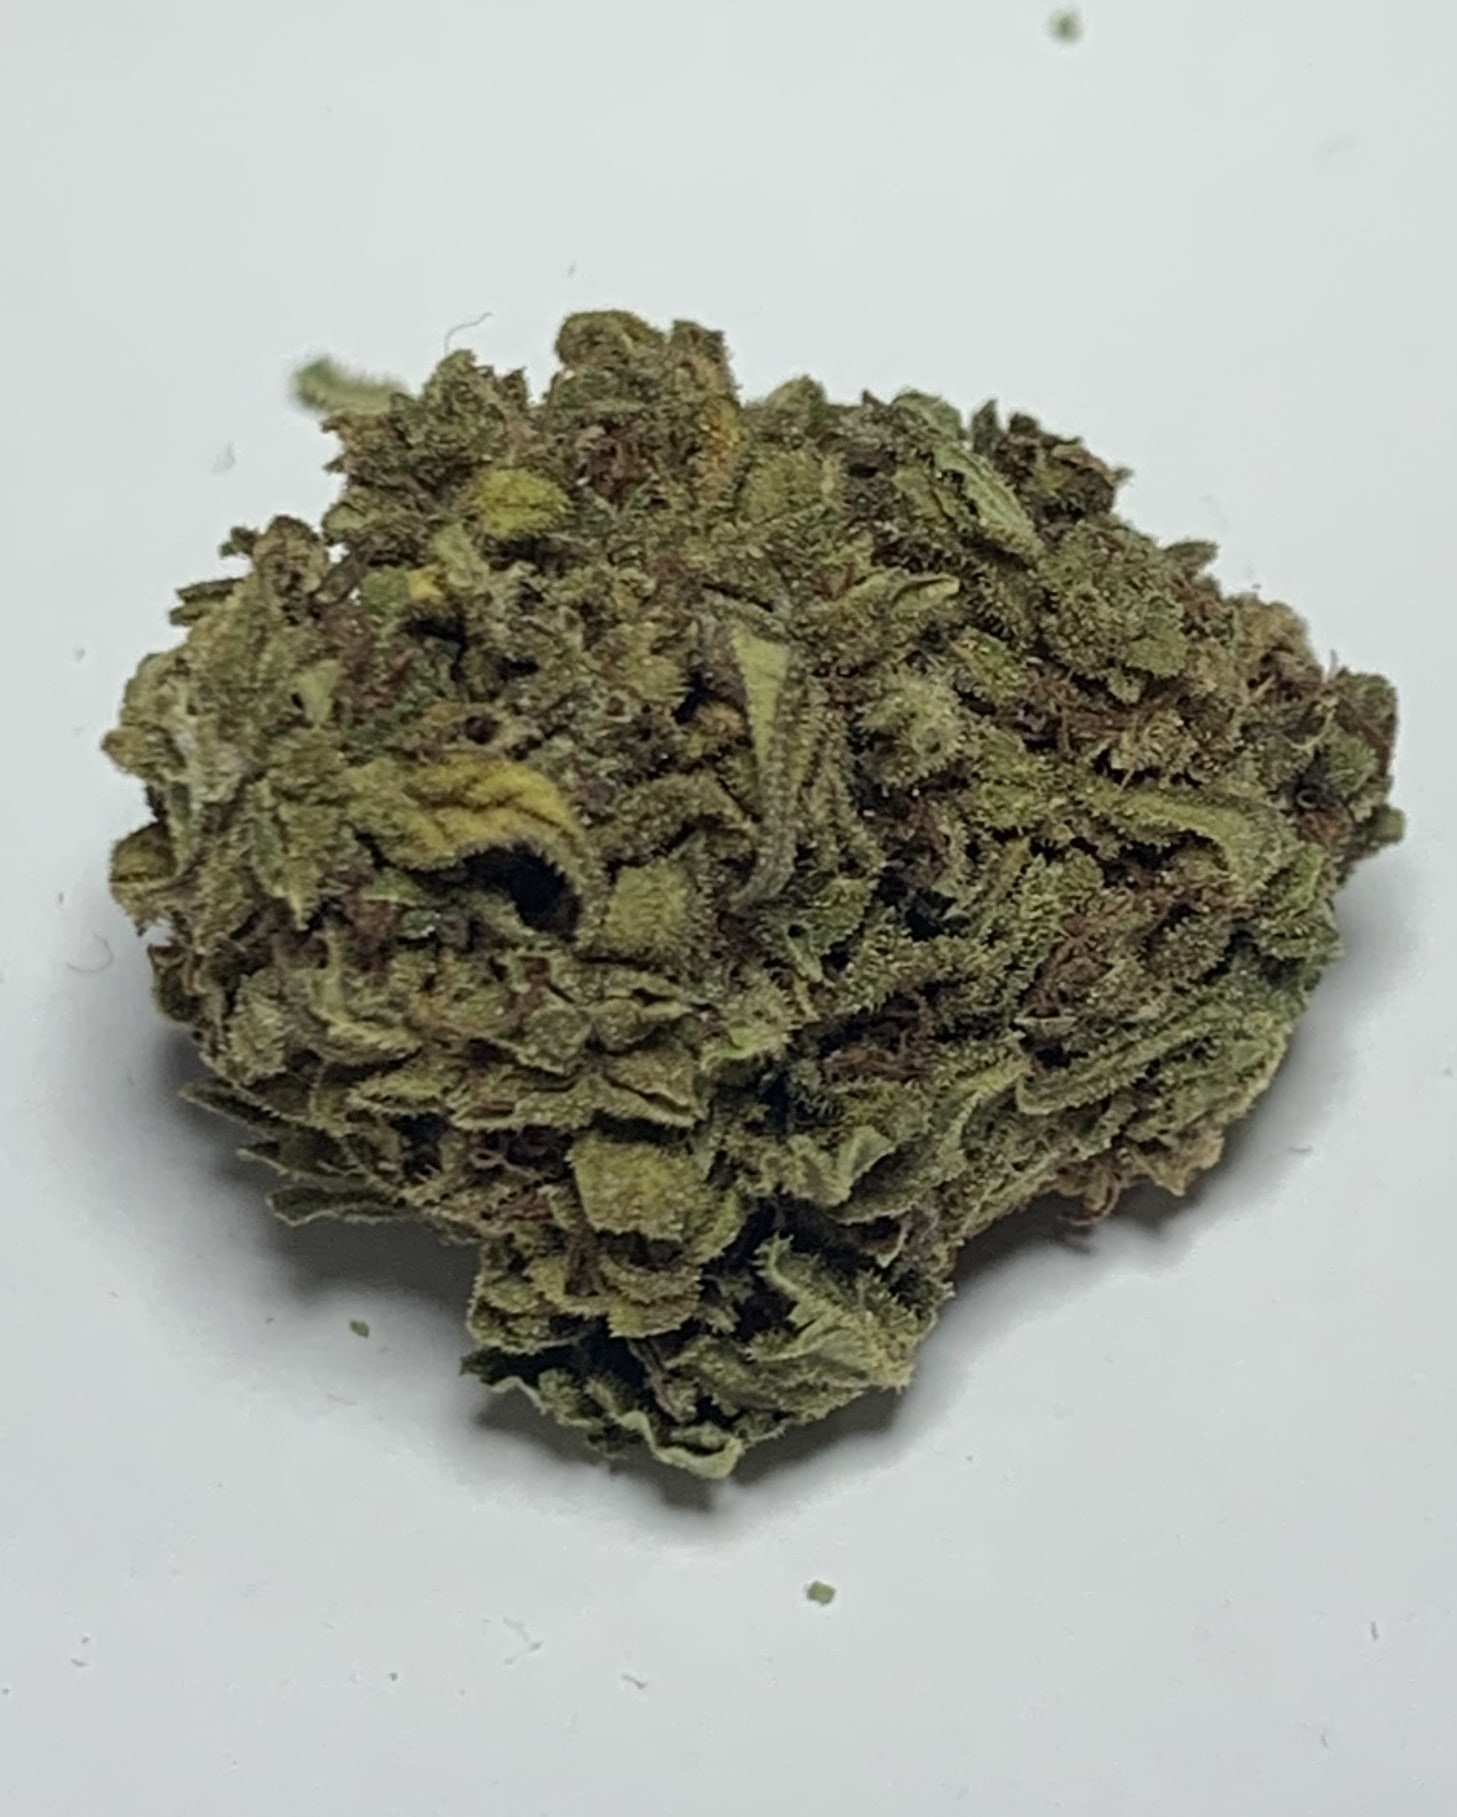 Special Sauce premium cbd hemp flower for sale